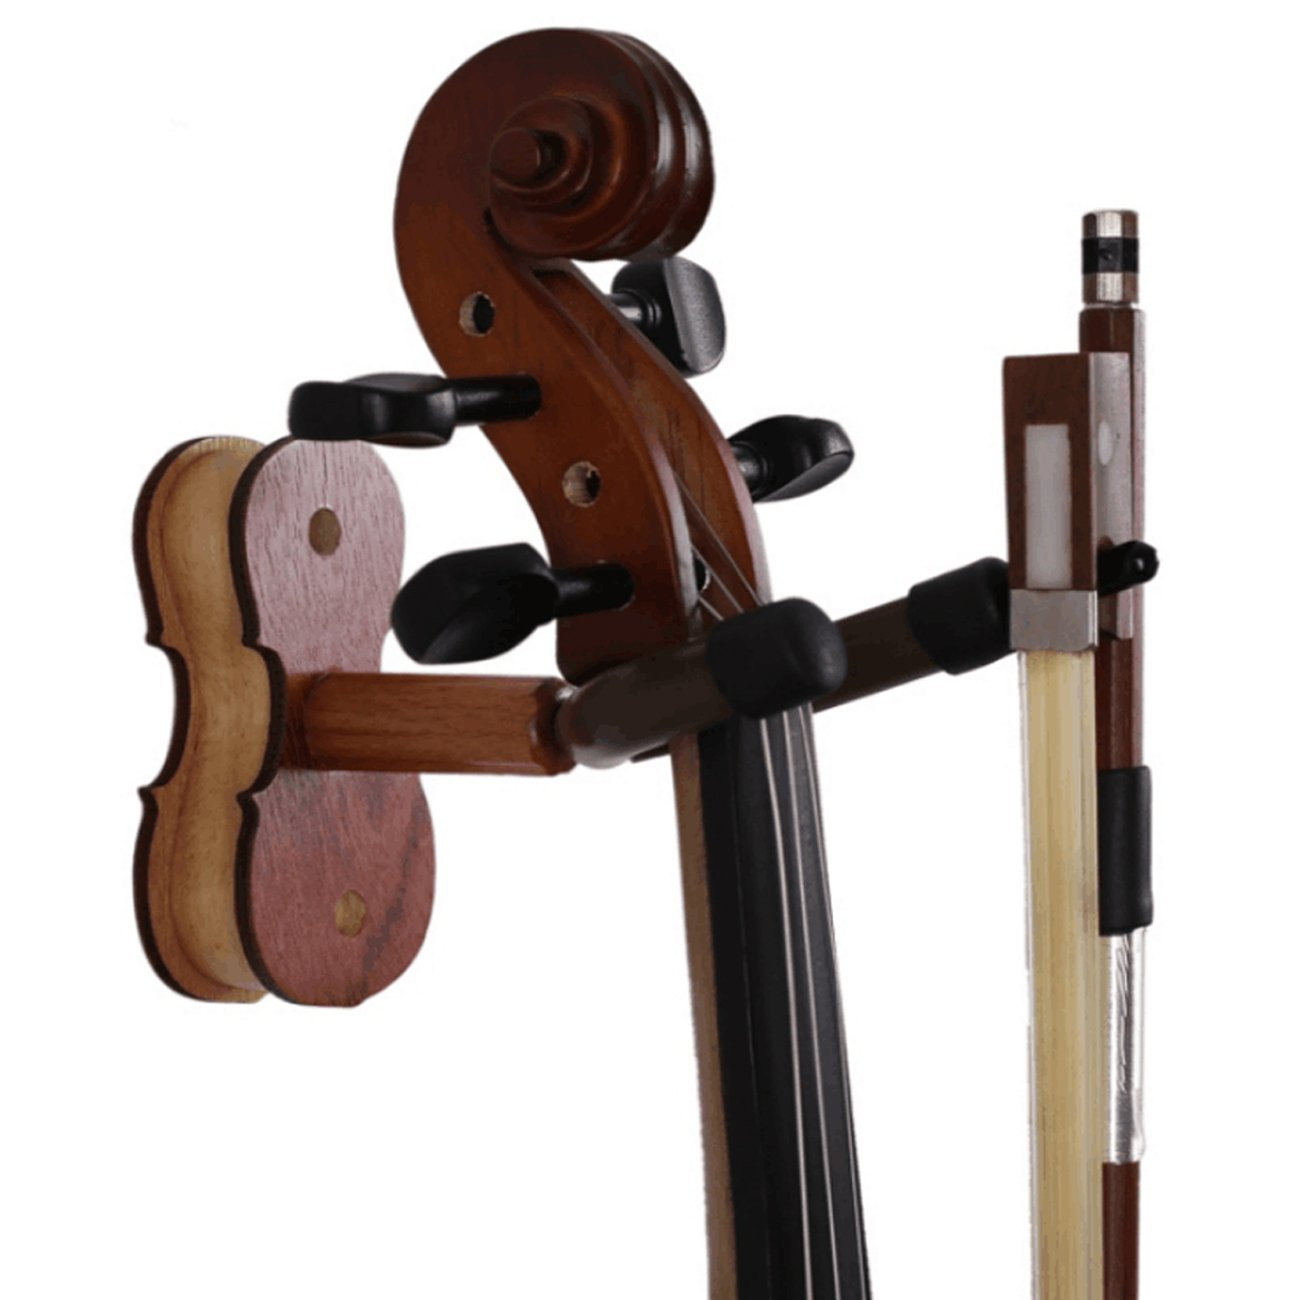 Violin Hanger,Crosstree Hardwood Rosewood Violin hook with Bow Hanger for Wall Amount Home & Studio Use (Rosewood) Crosstreesports